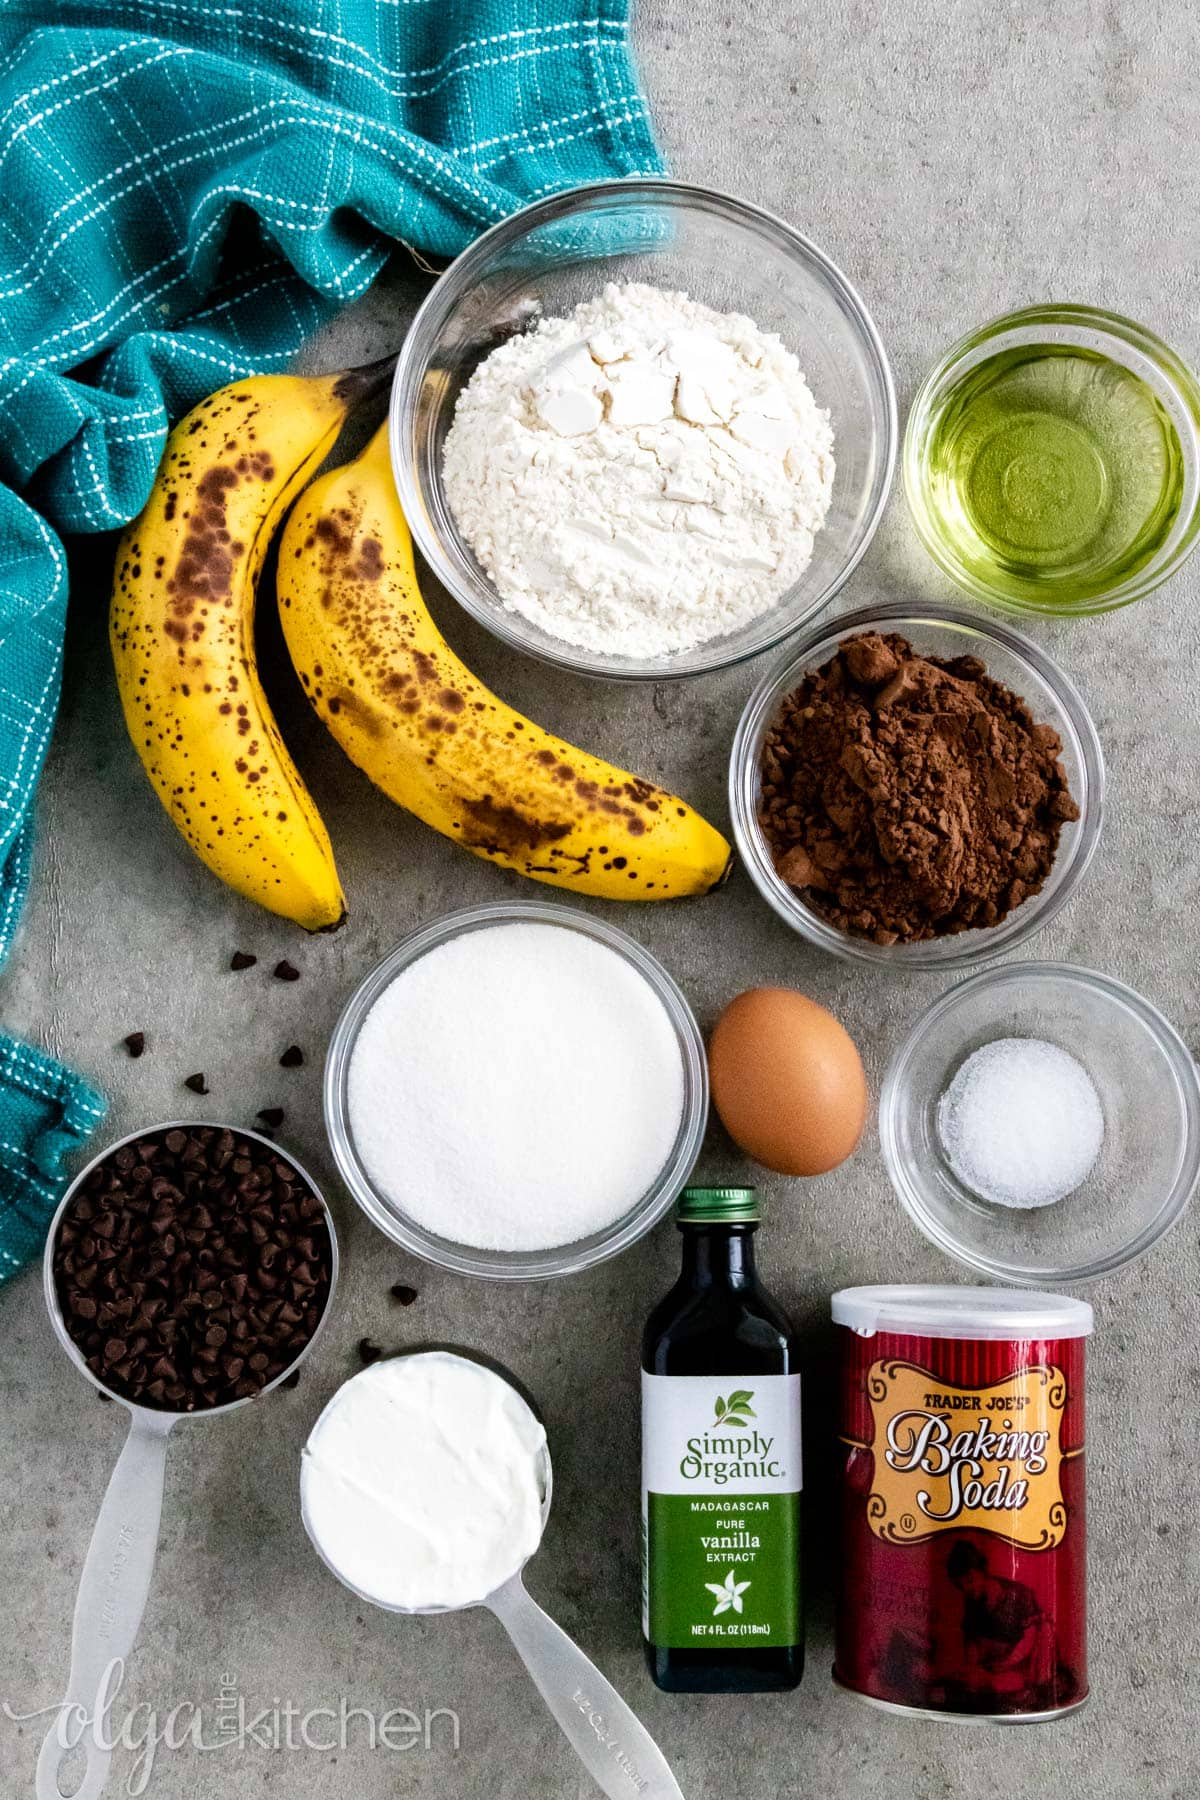 Ingredients for Double Chocolate Banana Muffins.